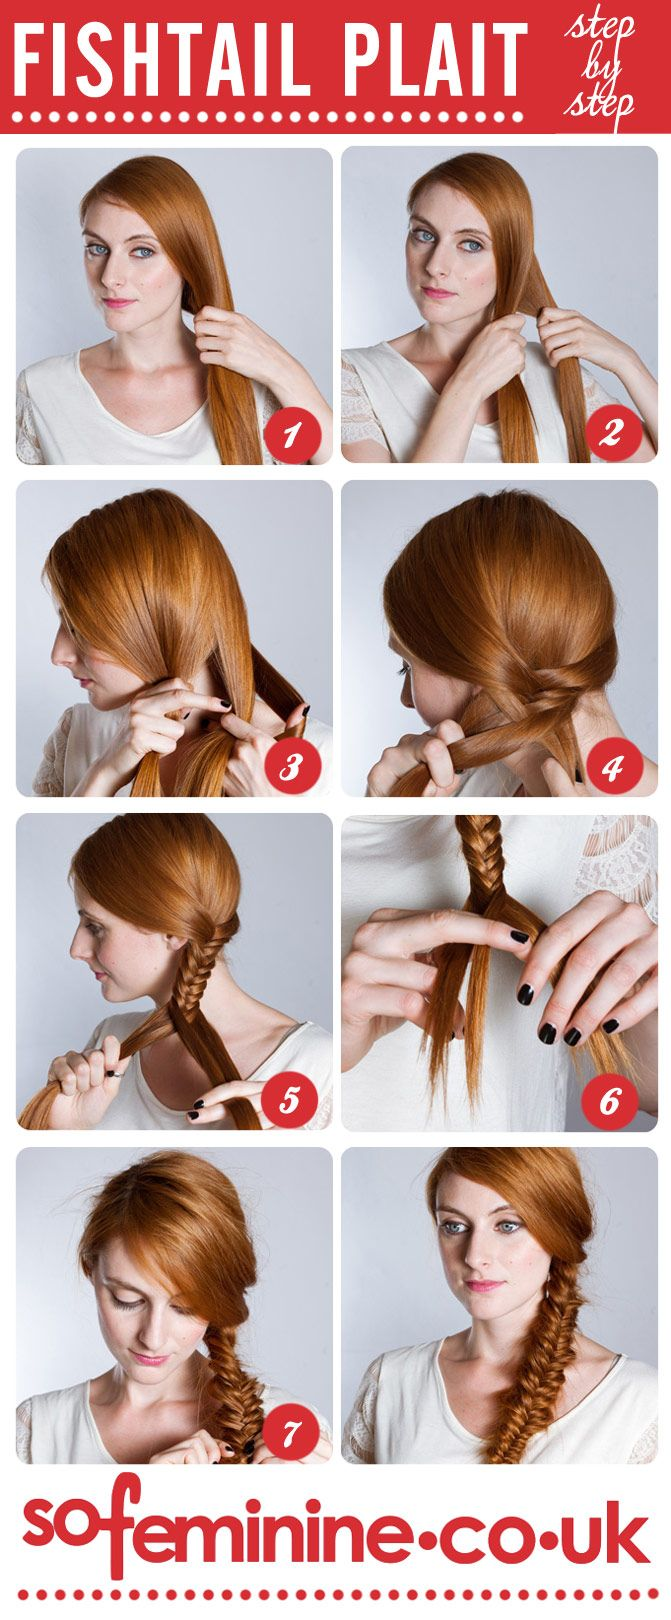 The fishtail plait is a must-have hair 'do this season. Try it out: http://www.sofeminine.co.uk/hair/how-to-do-a-fishtail-plait-som2083.html